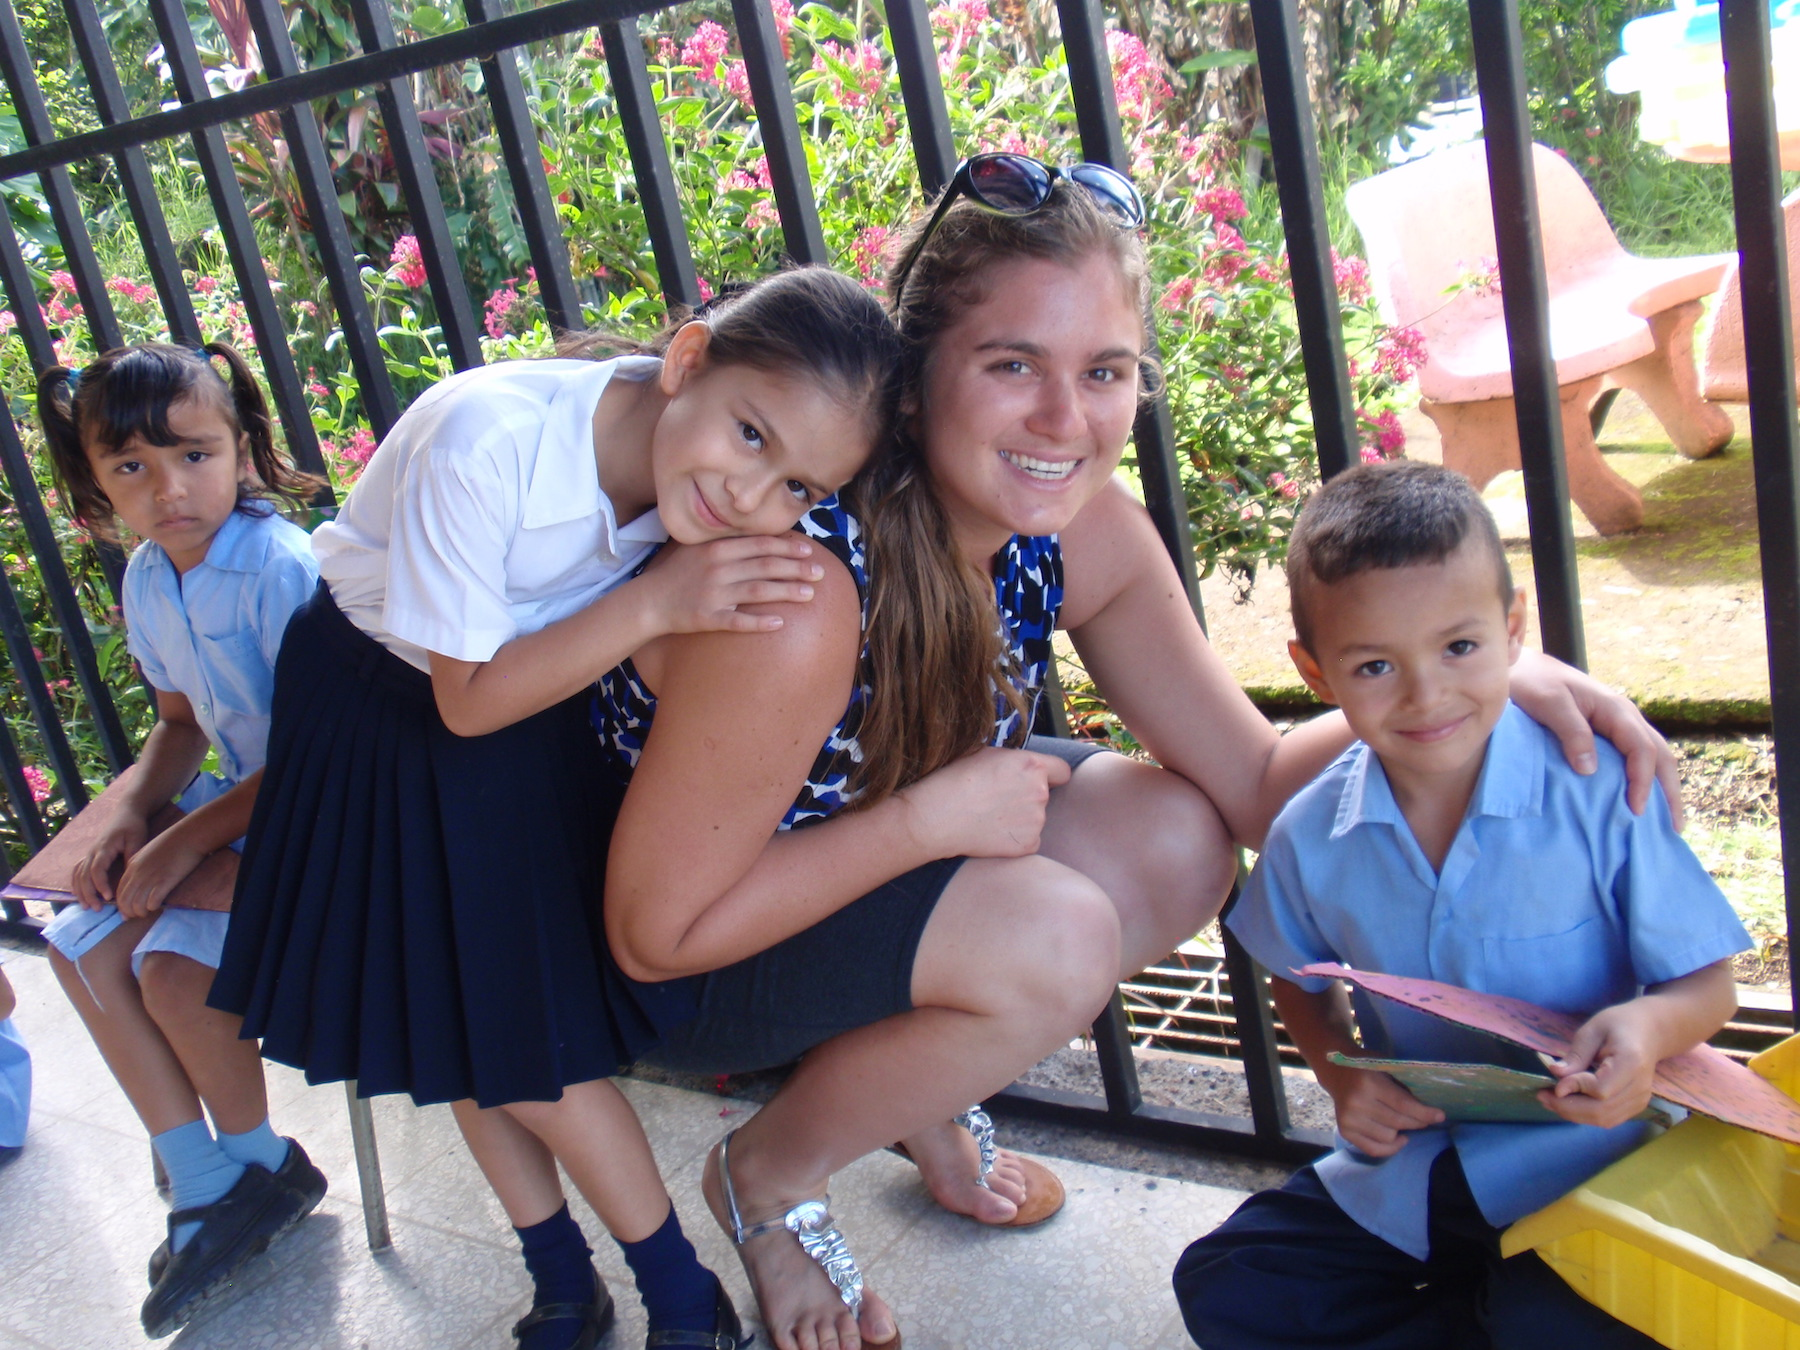 Spanish Comes Alive on Spanish Immersion Trips to Costa Rica